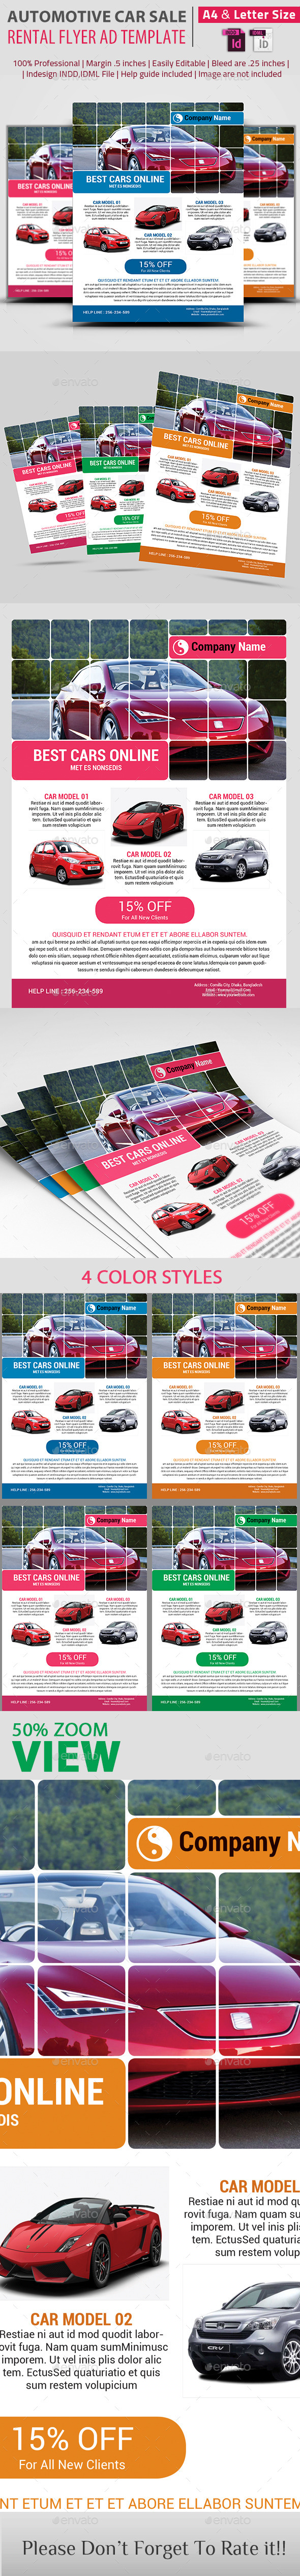 Automotive Car Sale  Rental Flyer Ad Template - Corporate Flyers